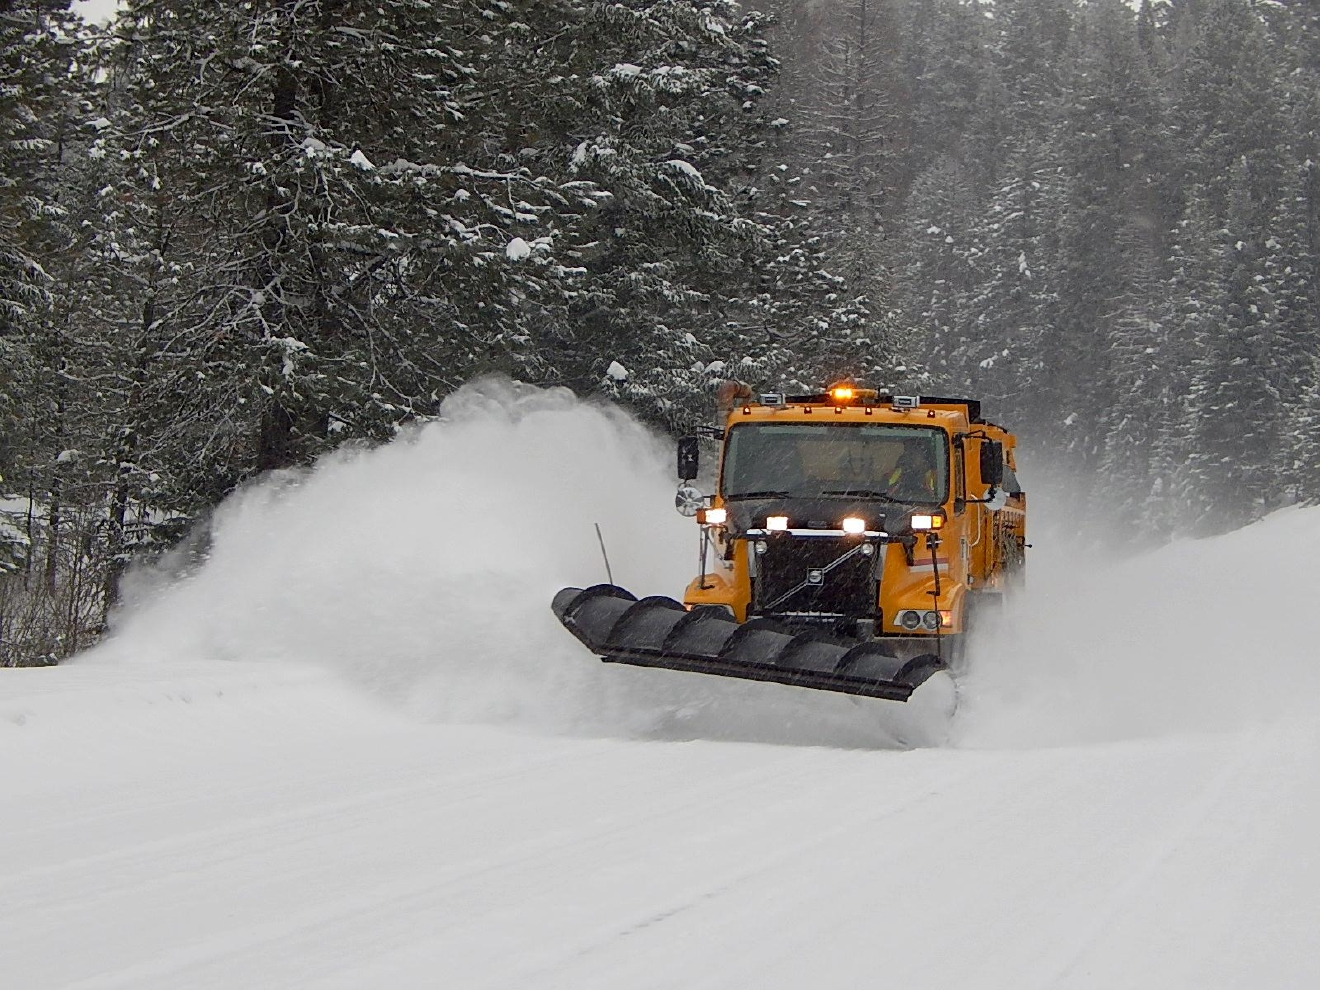 Snowplow on OR Highway 7 (Paul Kennington/CC by 2.0)